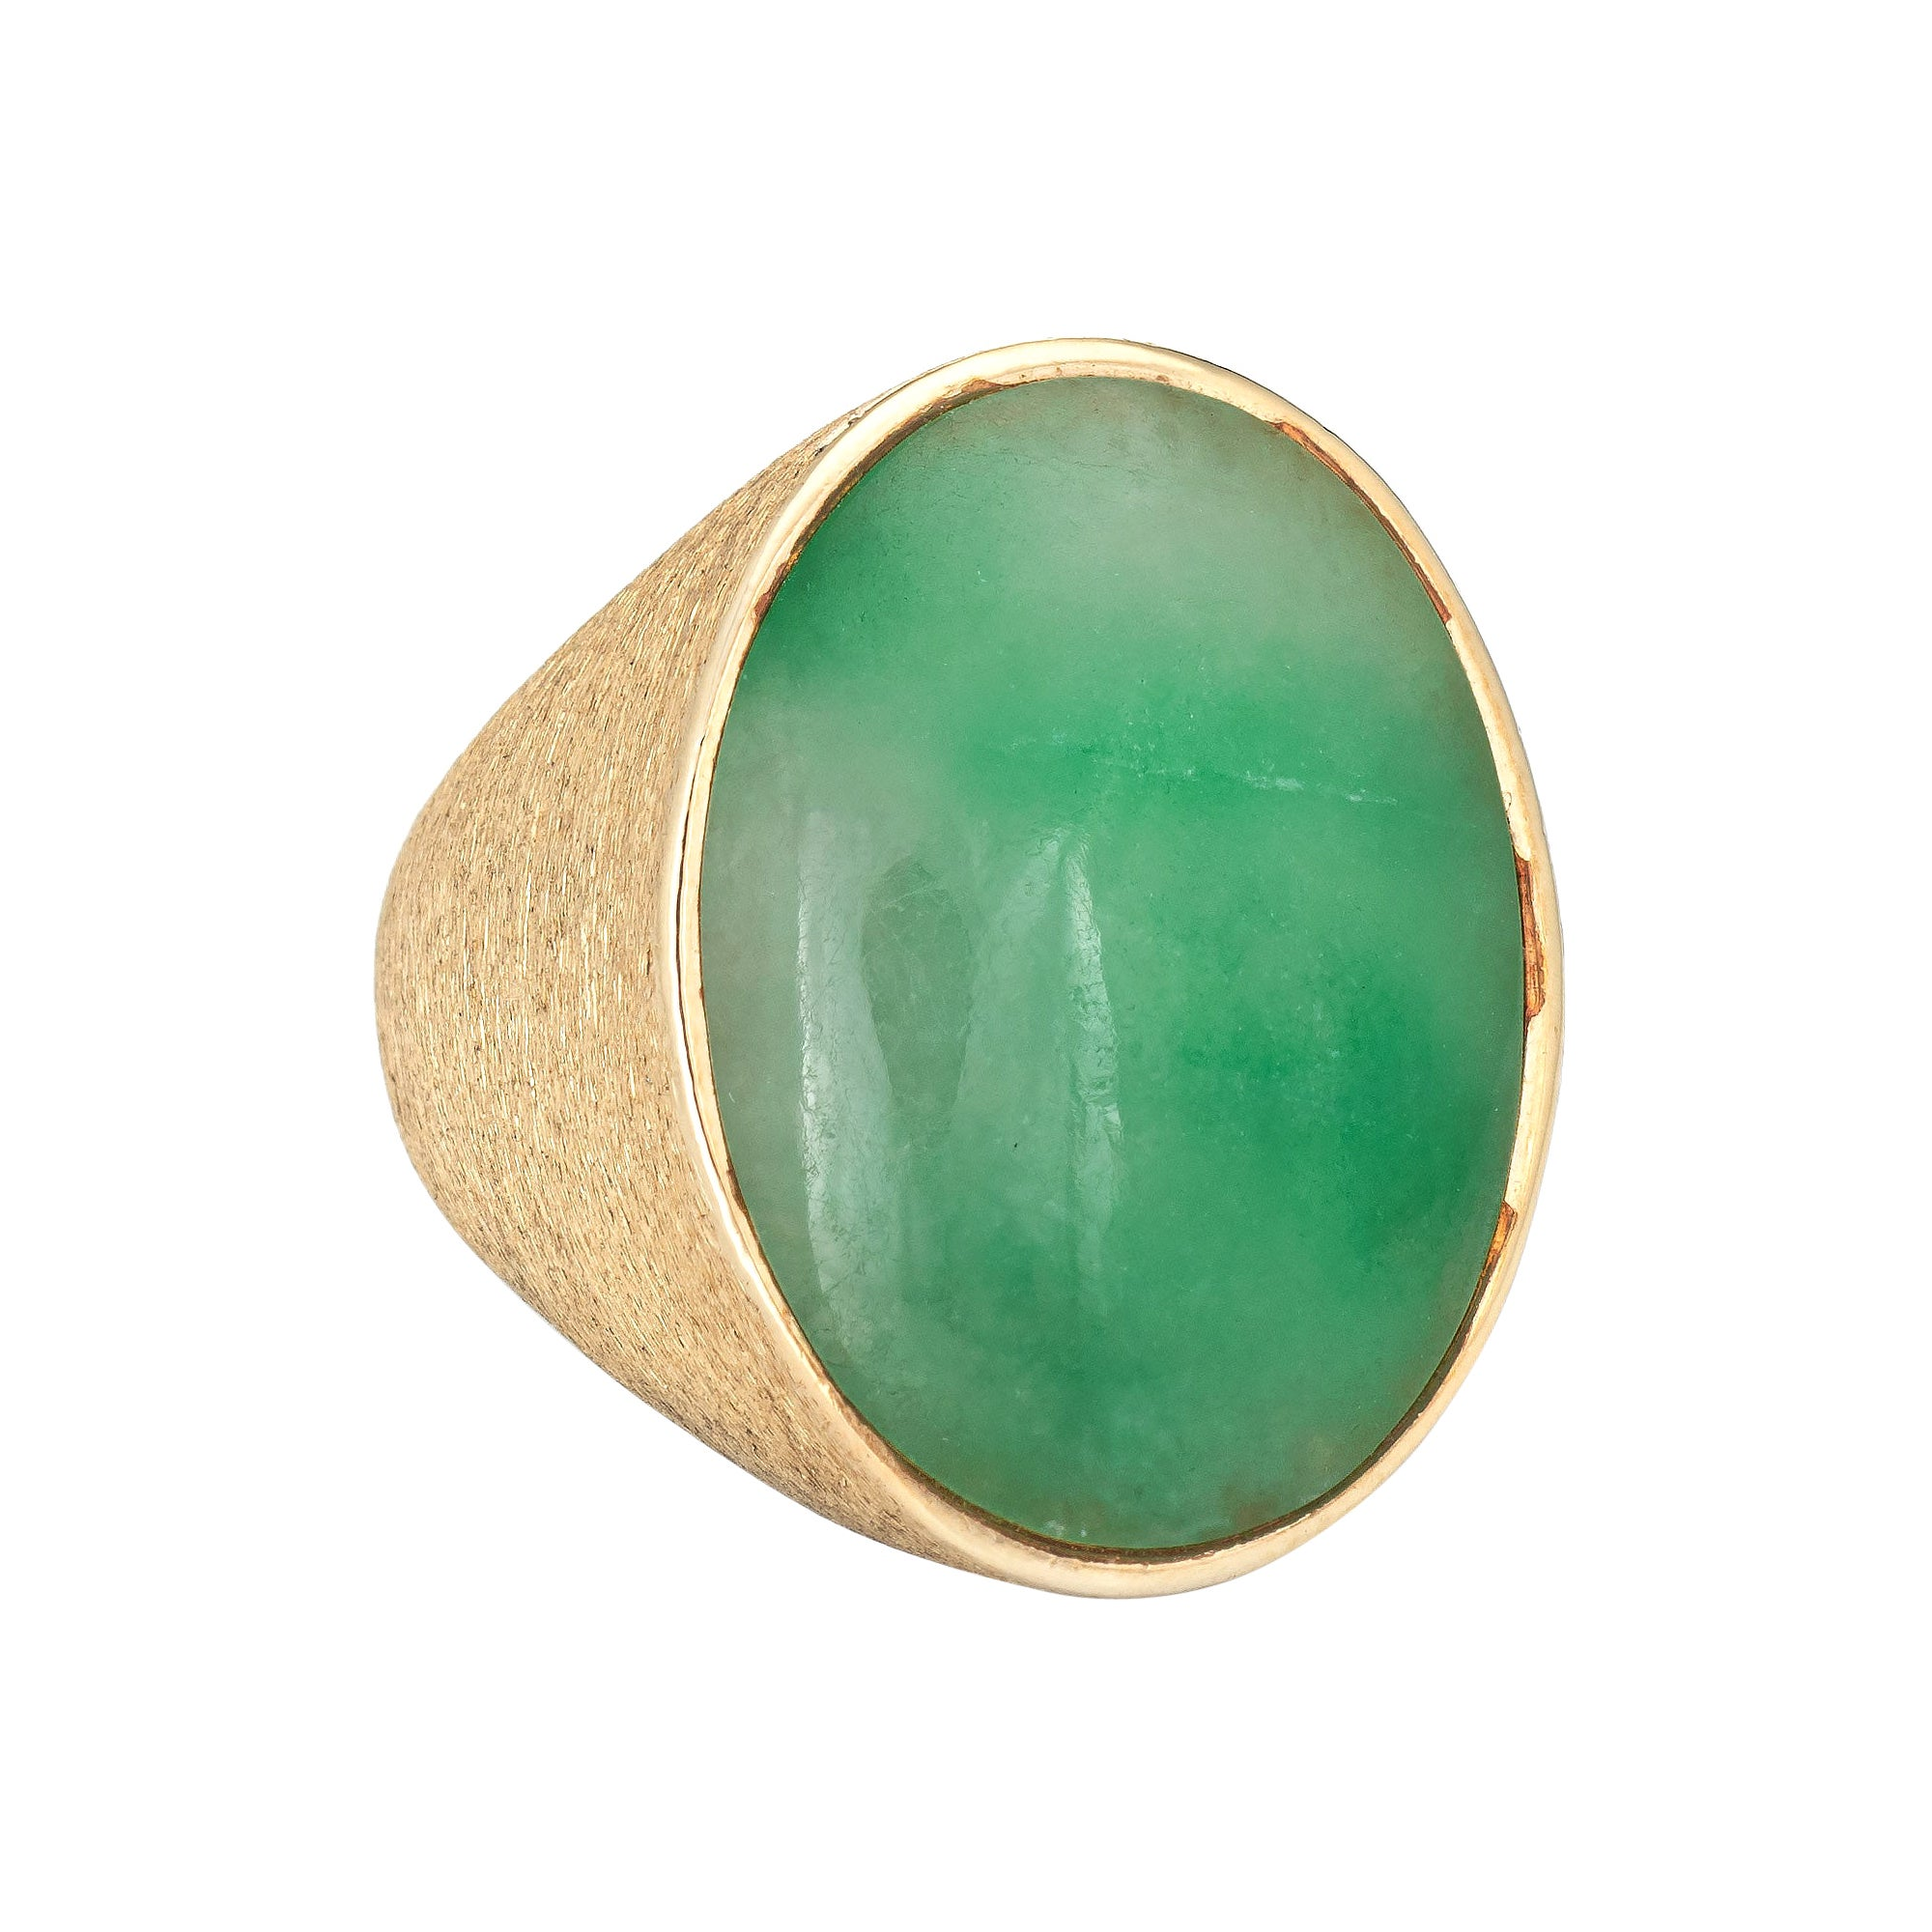 Large Jade Ring Vintage 14k Yellow Gold Oval Signet Men's Jewelry Gypsy